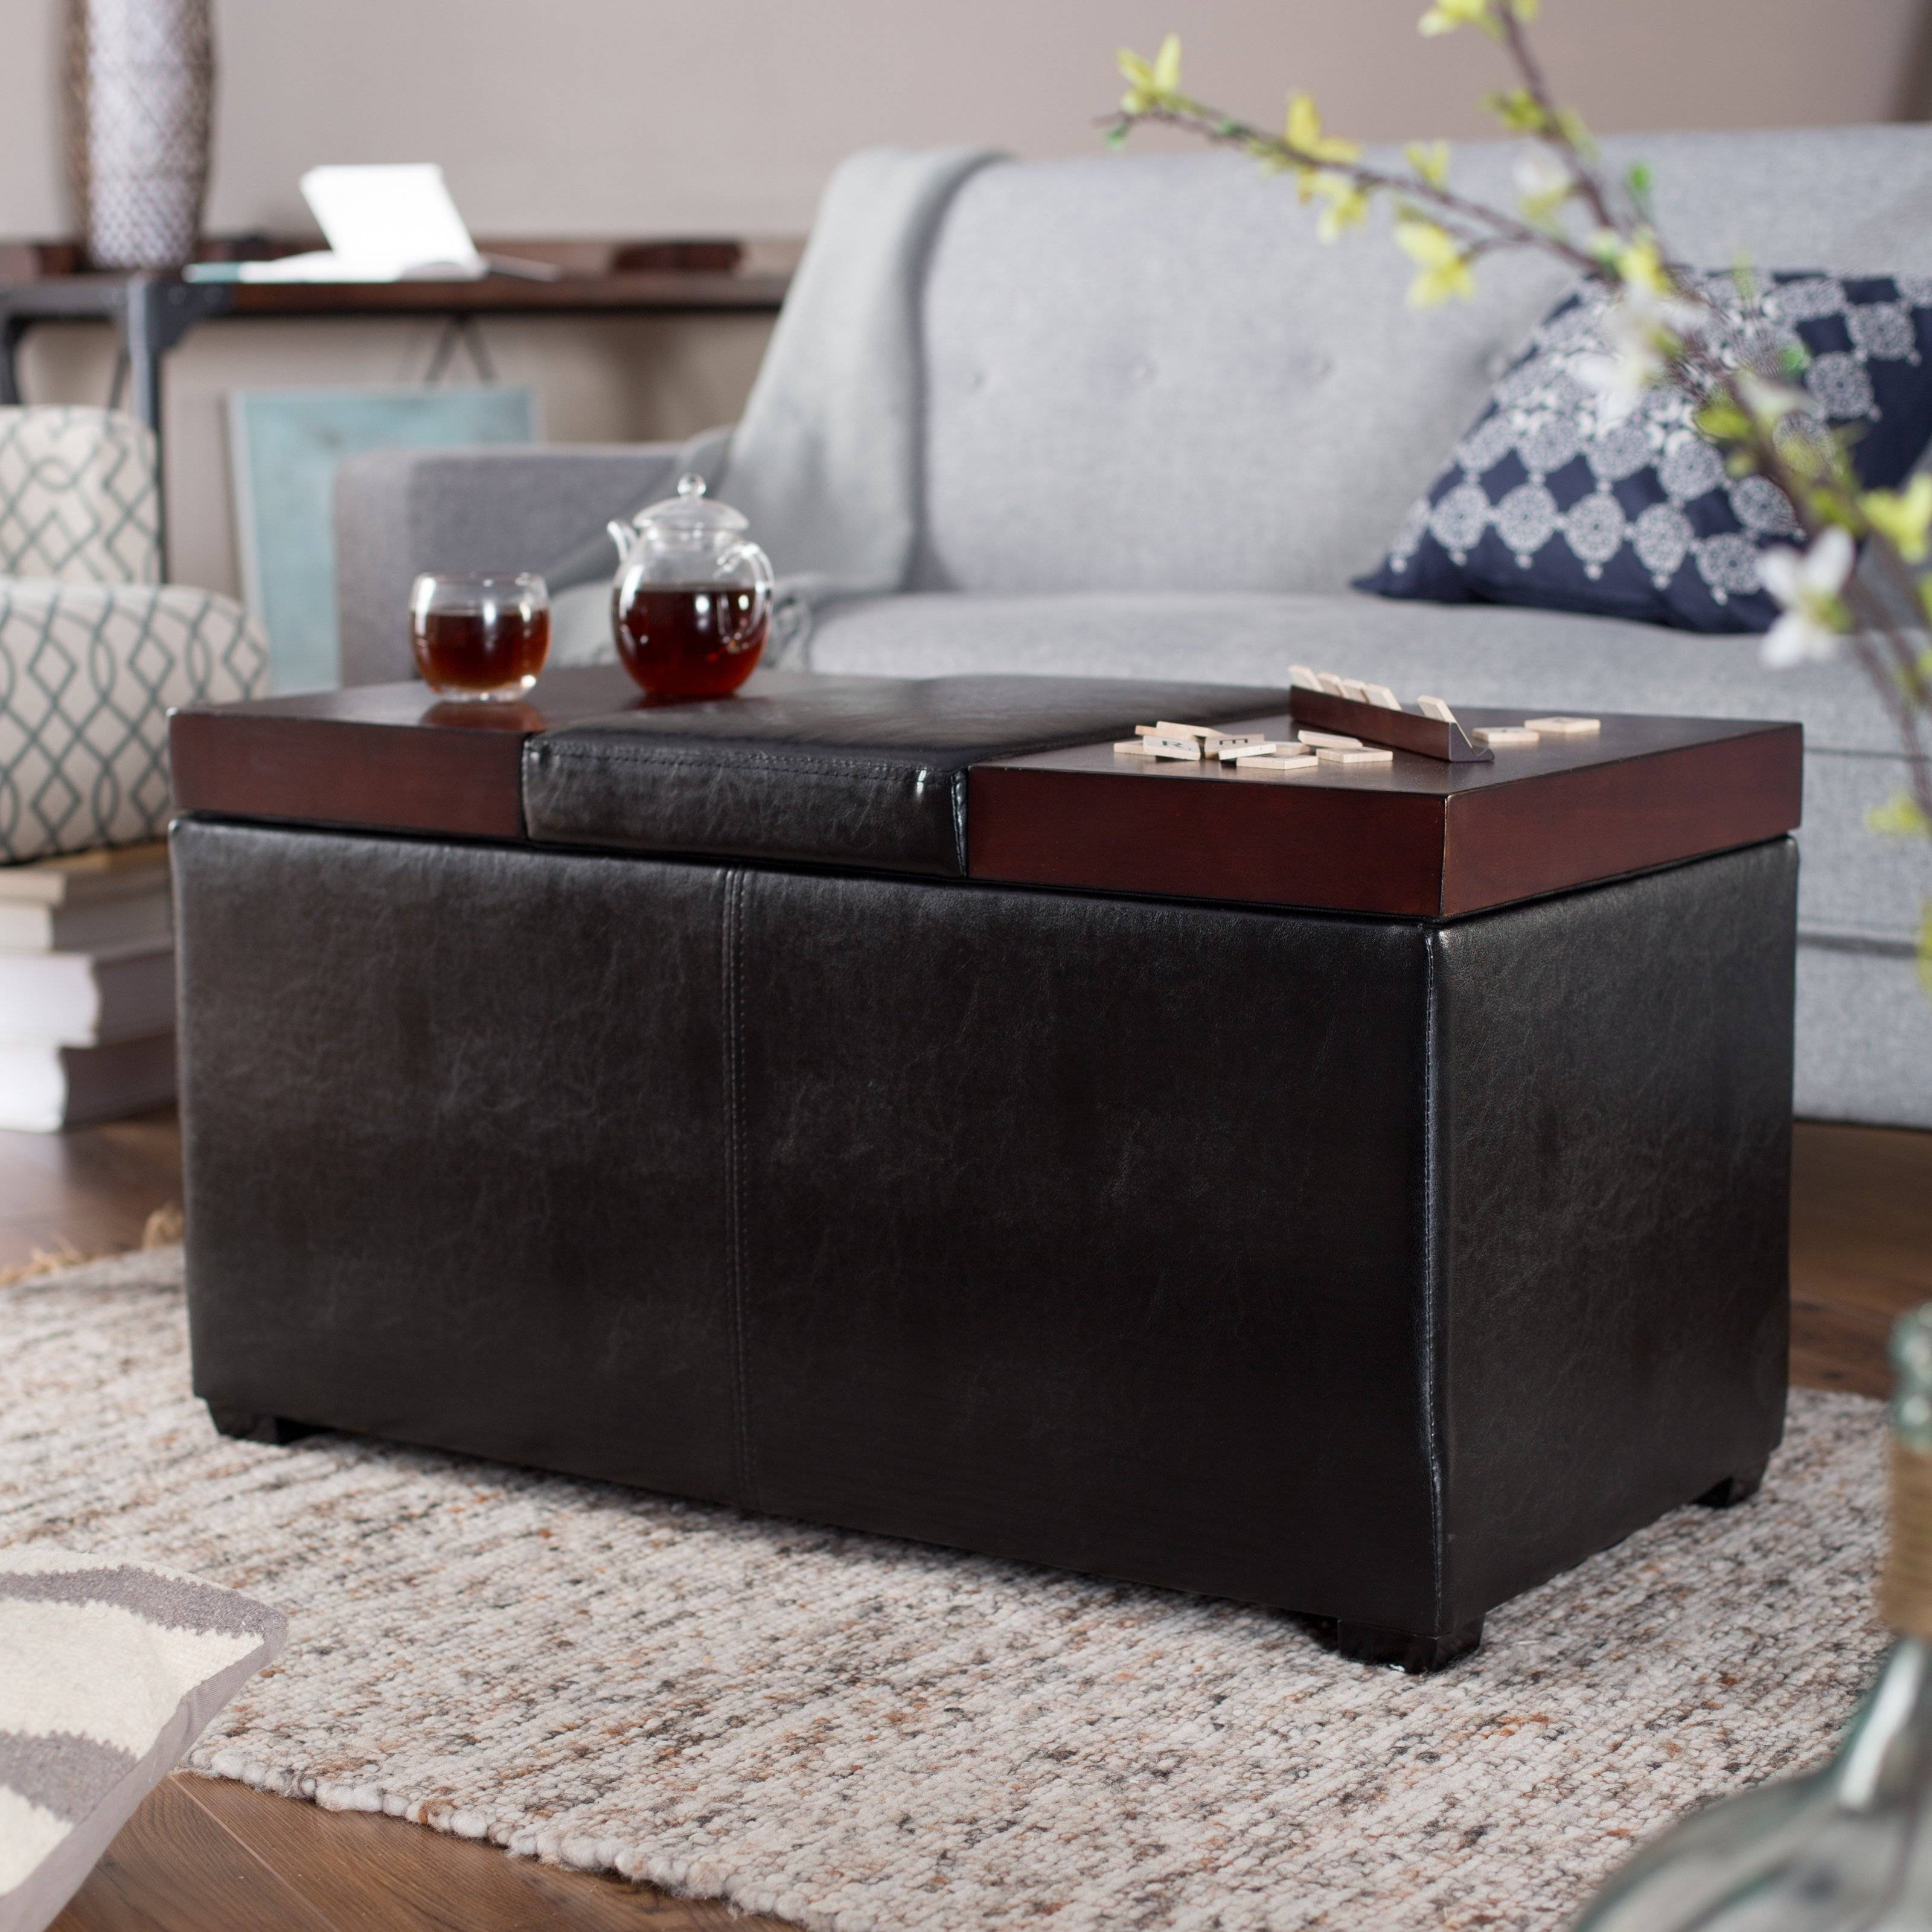 Leather Storage Bench Coffee Table | Coffee Tables Decoration throughout Madison Coffee Tables (Image 13 of 30)